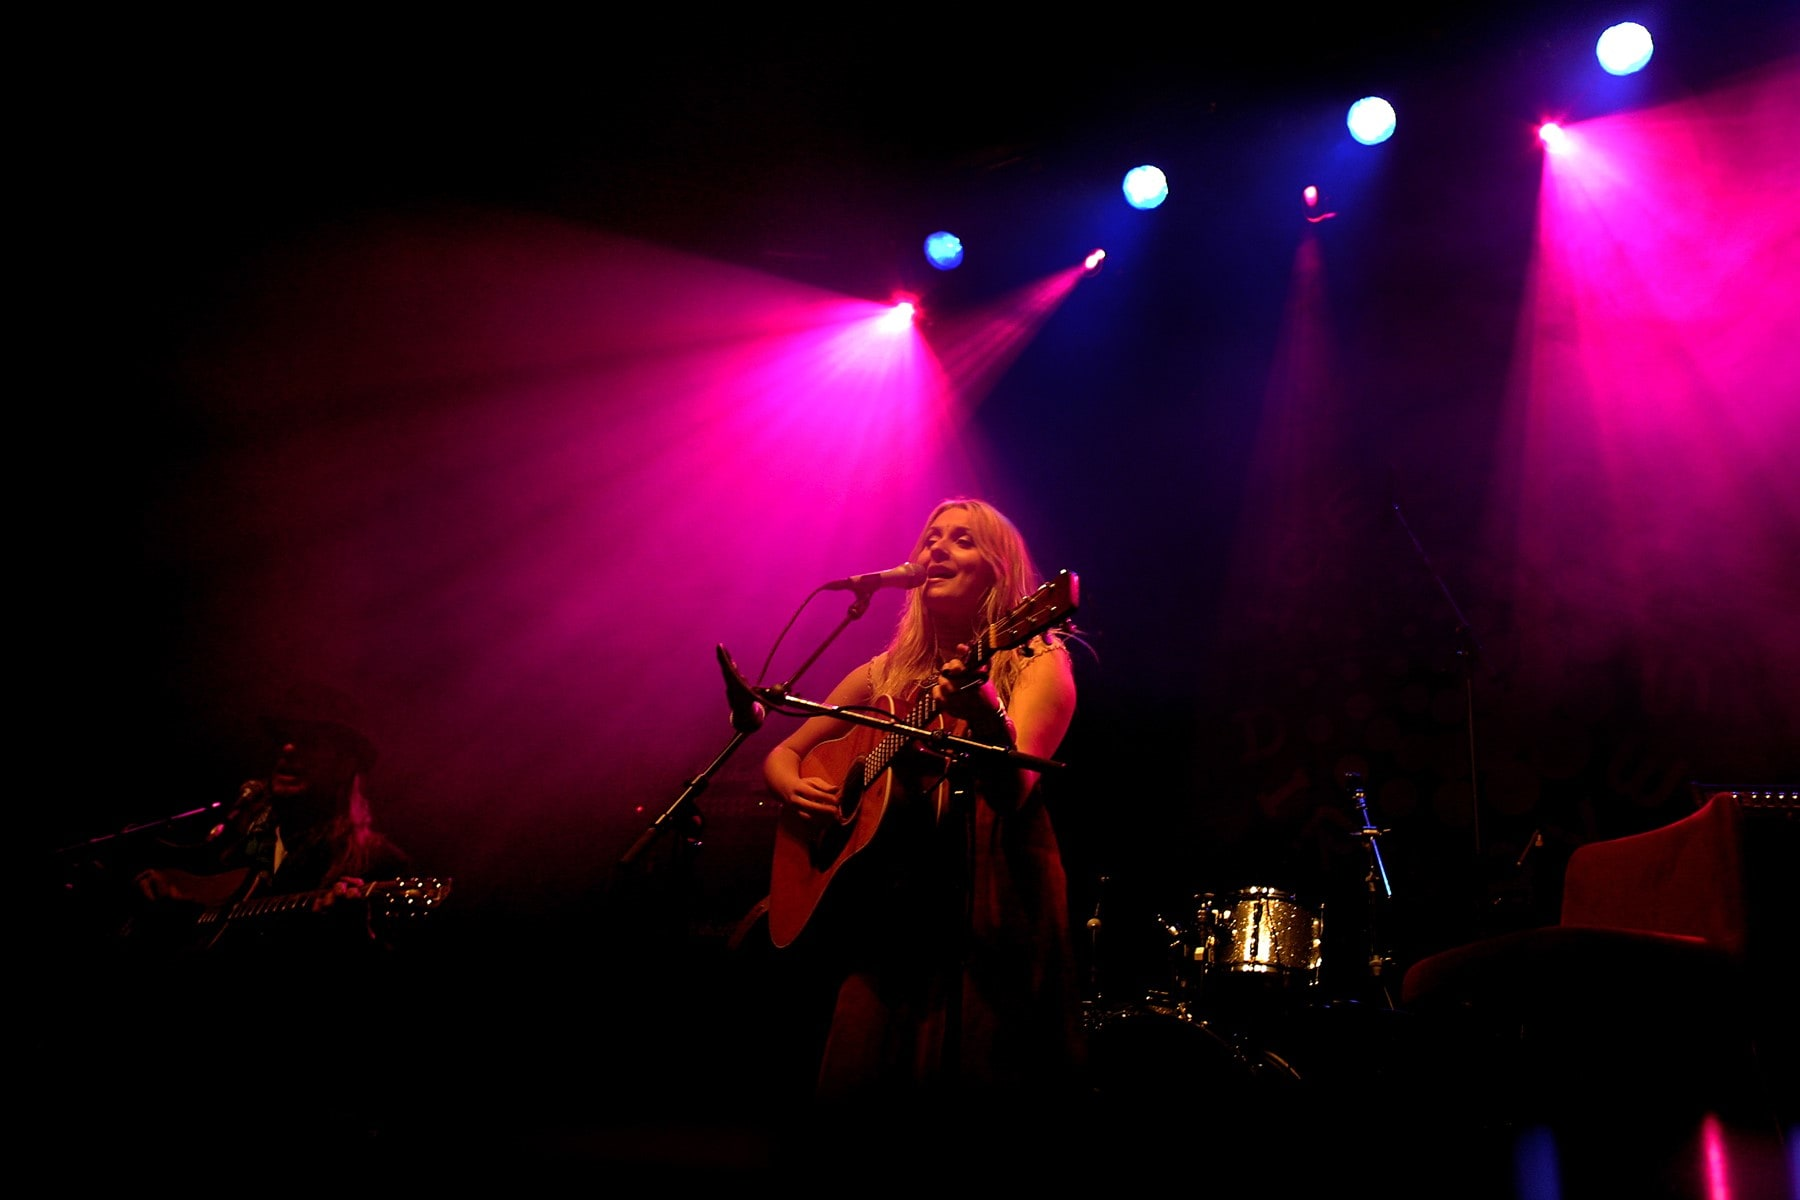 Musician Eivor pictured performing on a stage with pink lighting behind